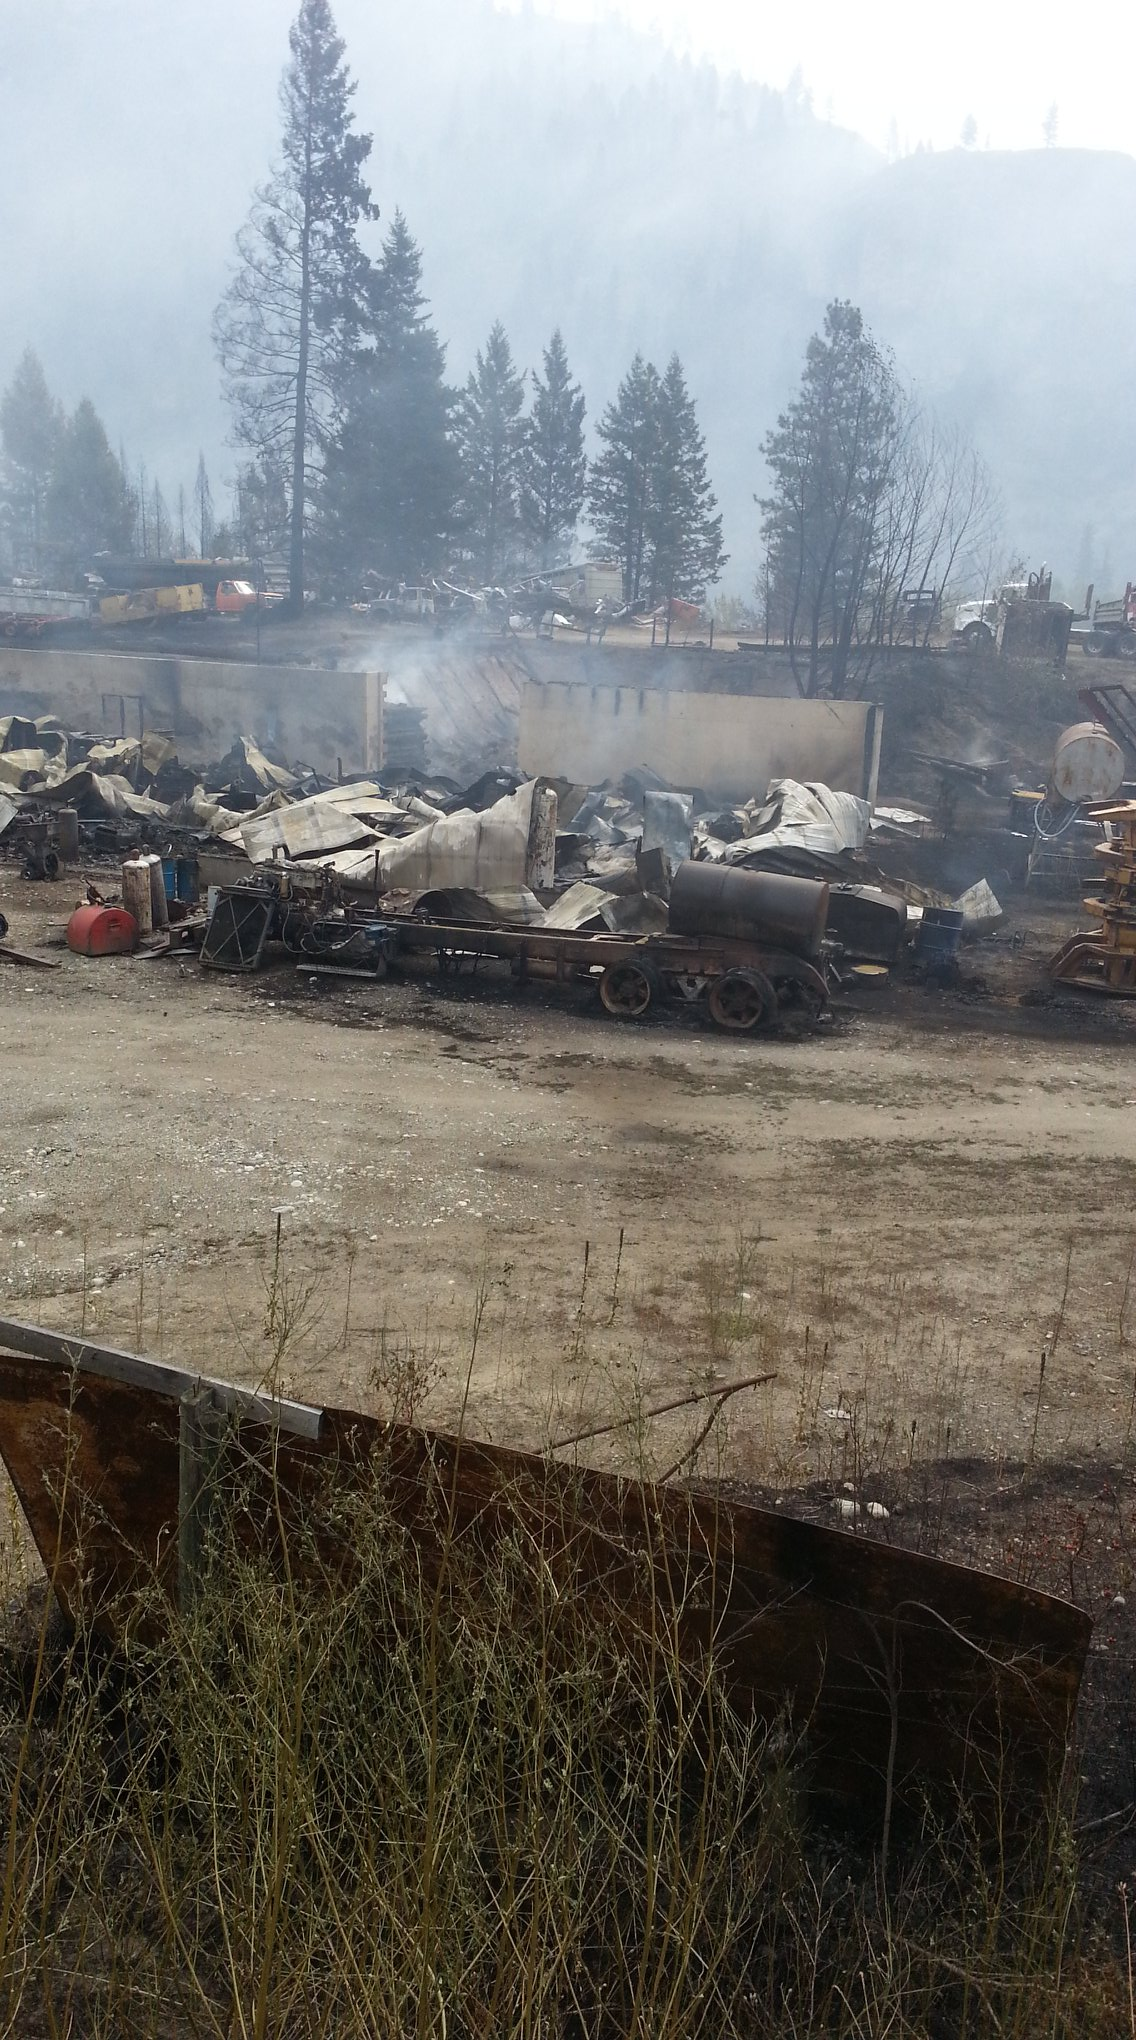 Image: Tay Ferguson via Rock Creek Fire and Evacuee Information Group / Facebook